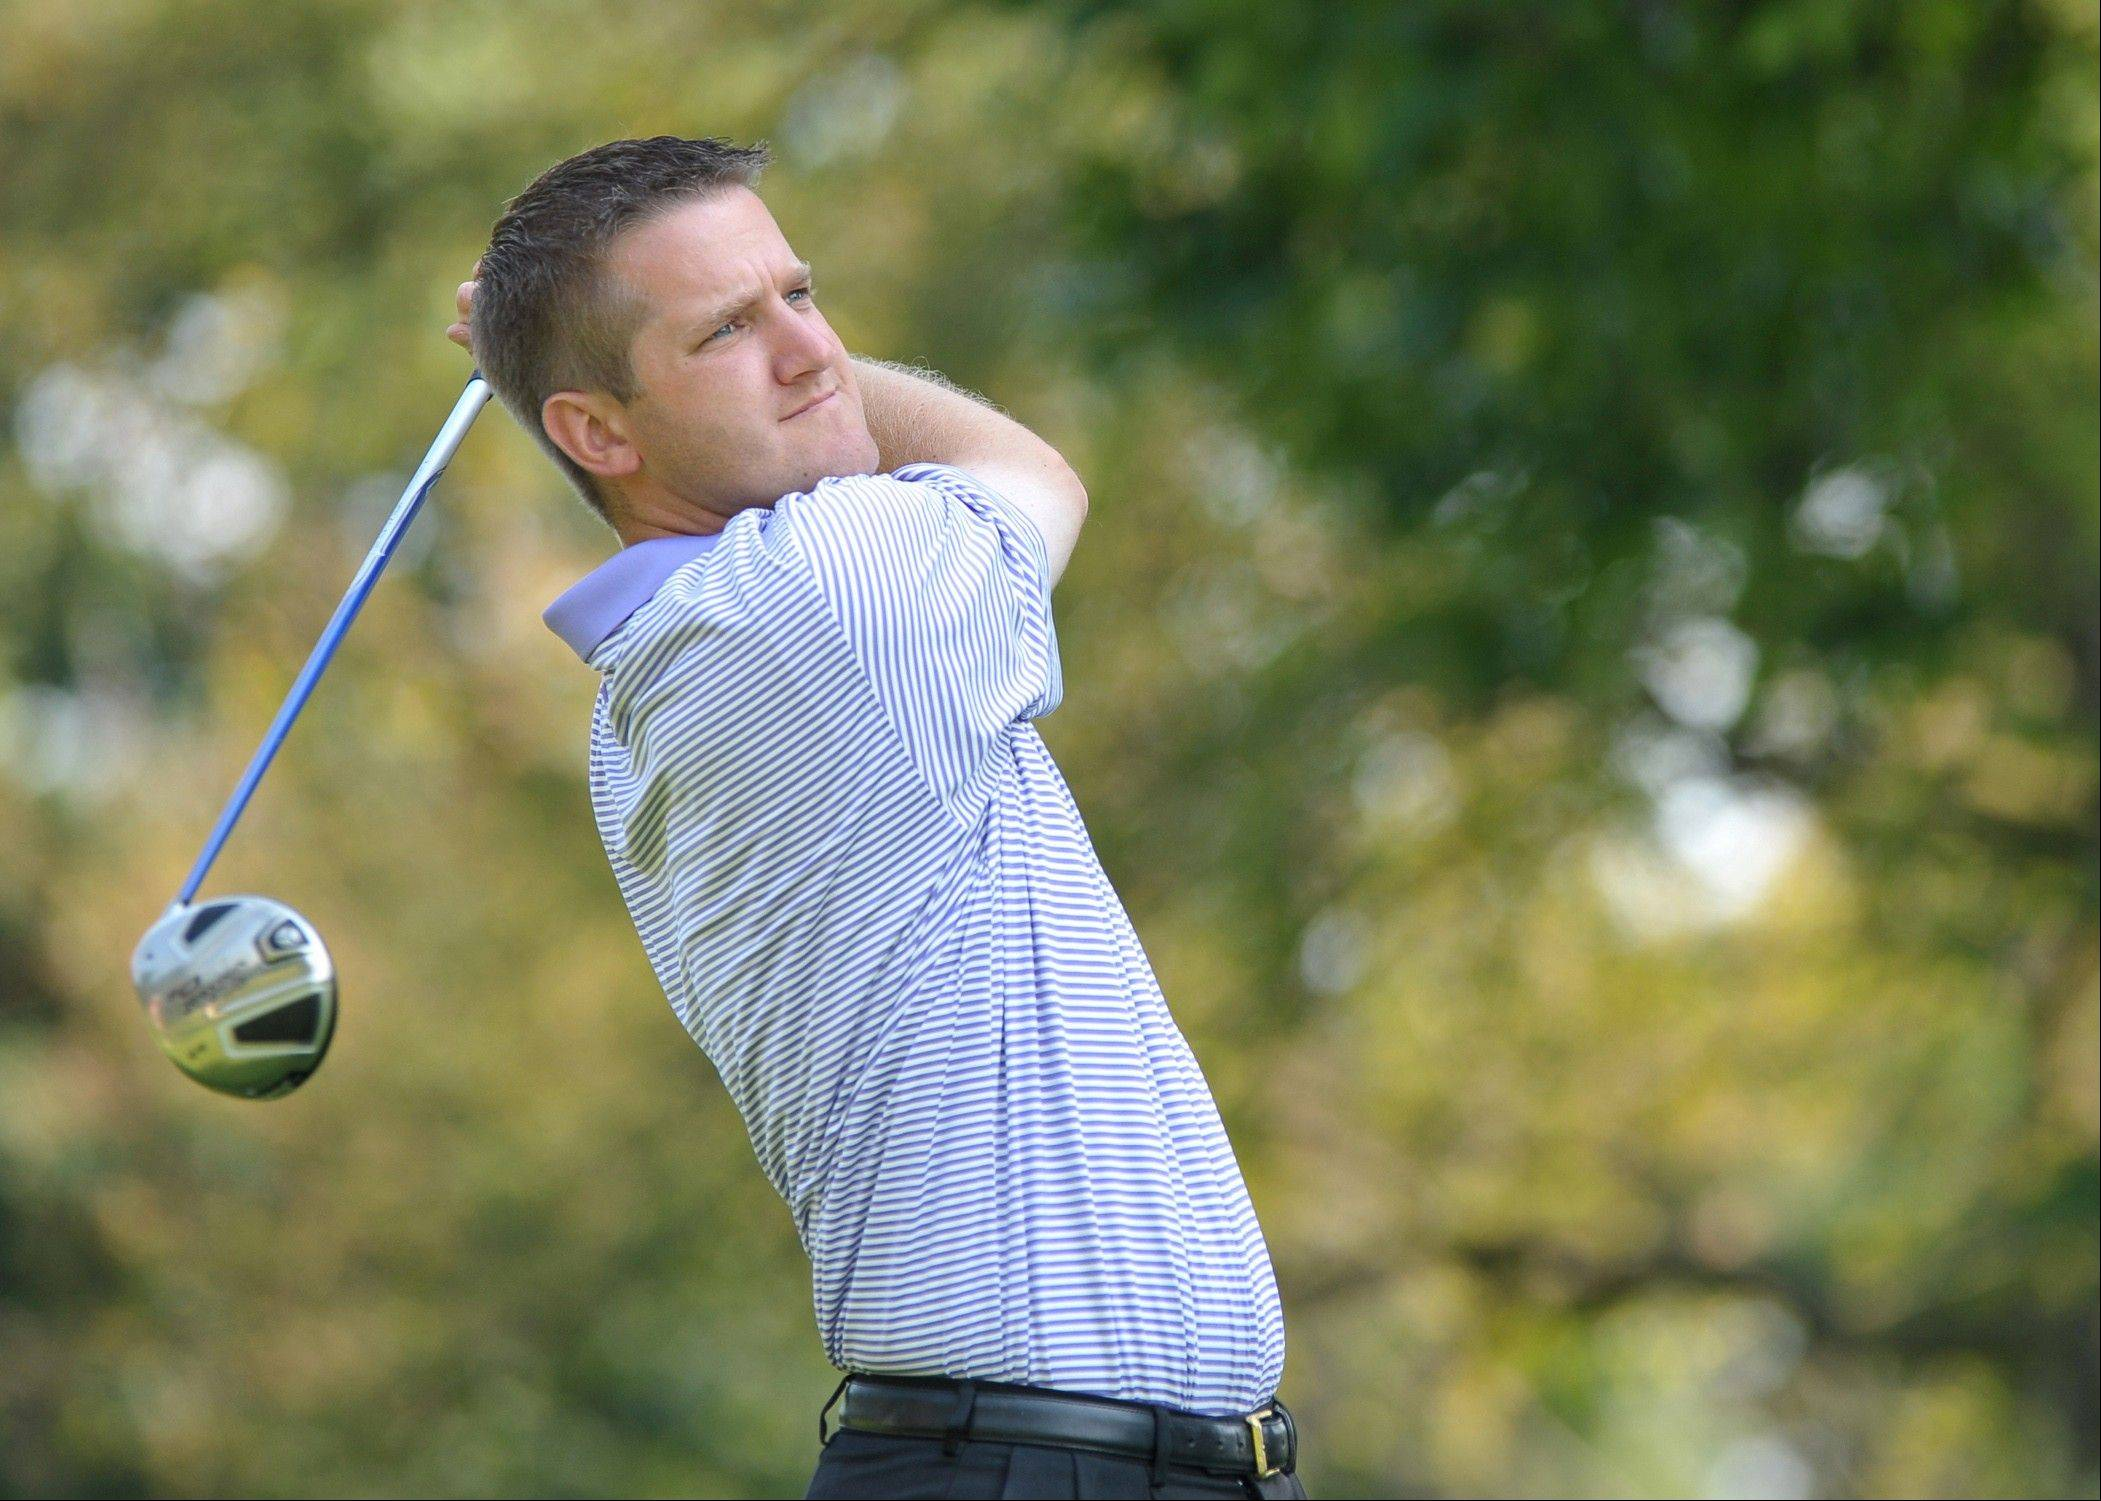 Matt Slowinski of Glen Ellyn finished second last week in the 89th Illinois PGA Championship at Medinah Country Club. The winner, Matt Slowinshi, led wire-to-wire.